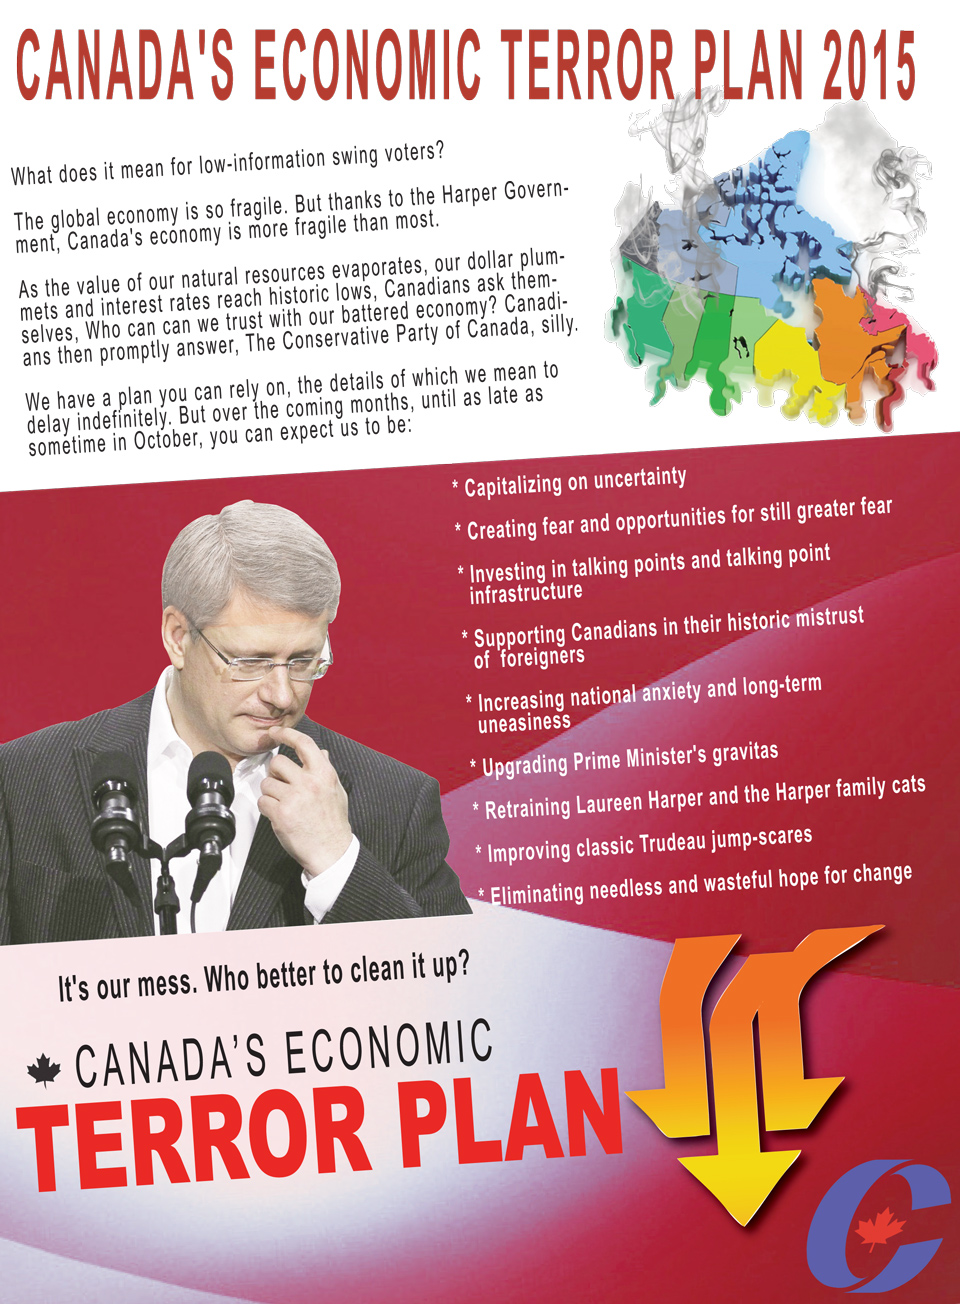 canada-economic-terror-plan-full